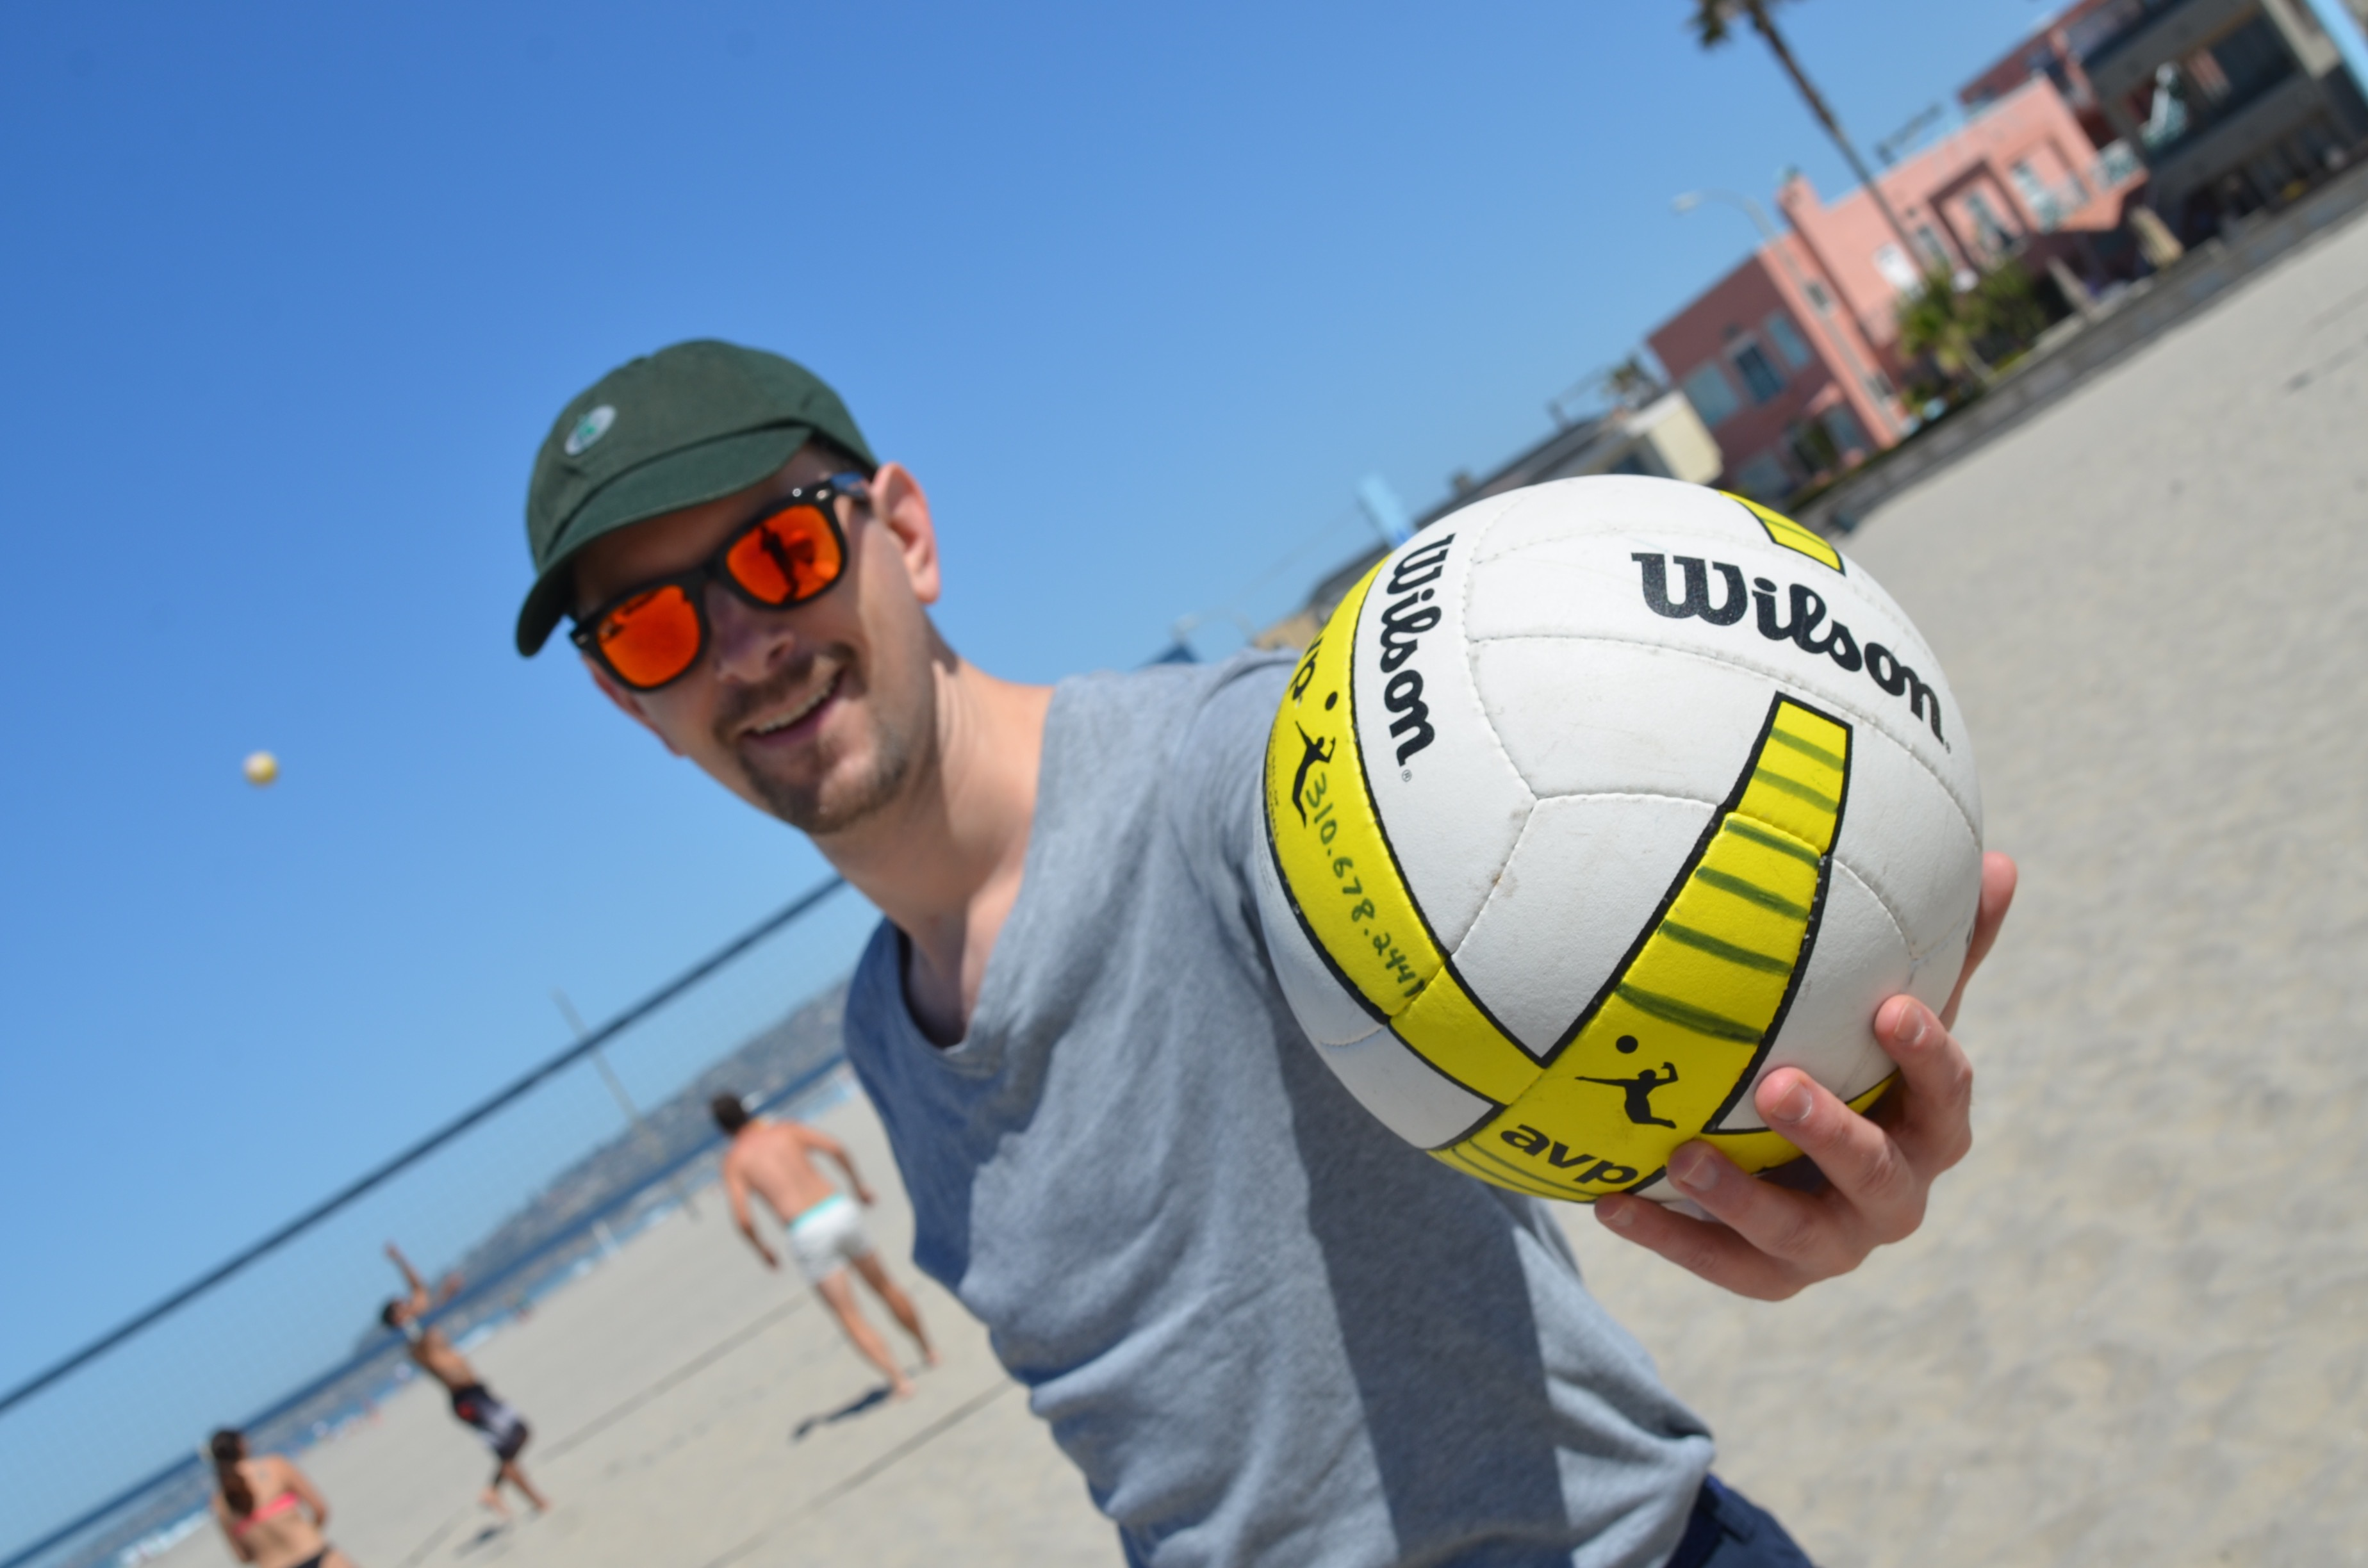 Volleyball on the beach with Brent Deverman